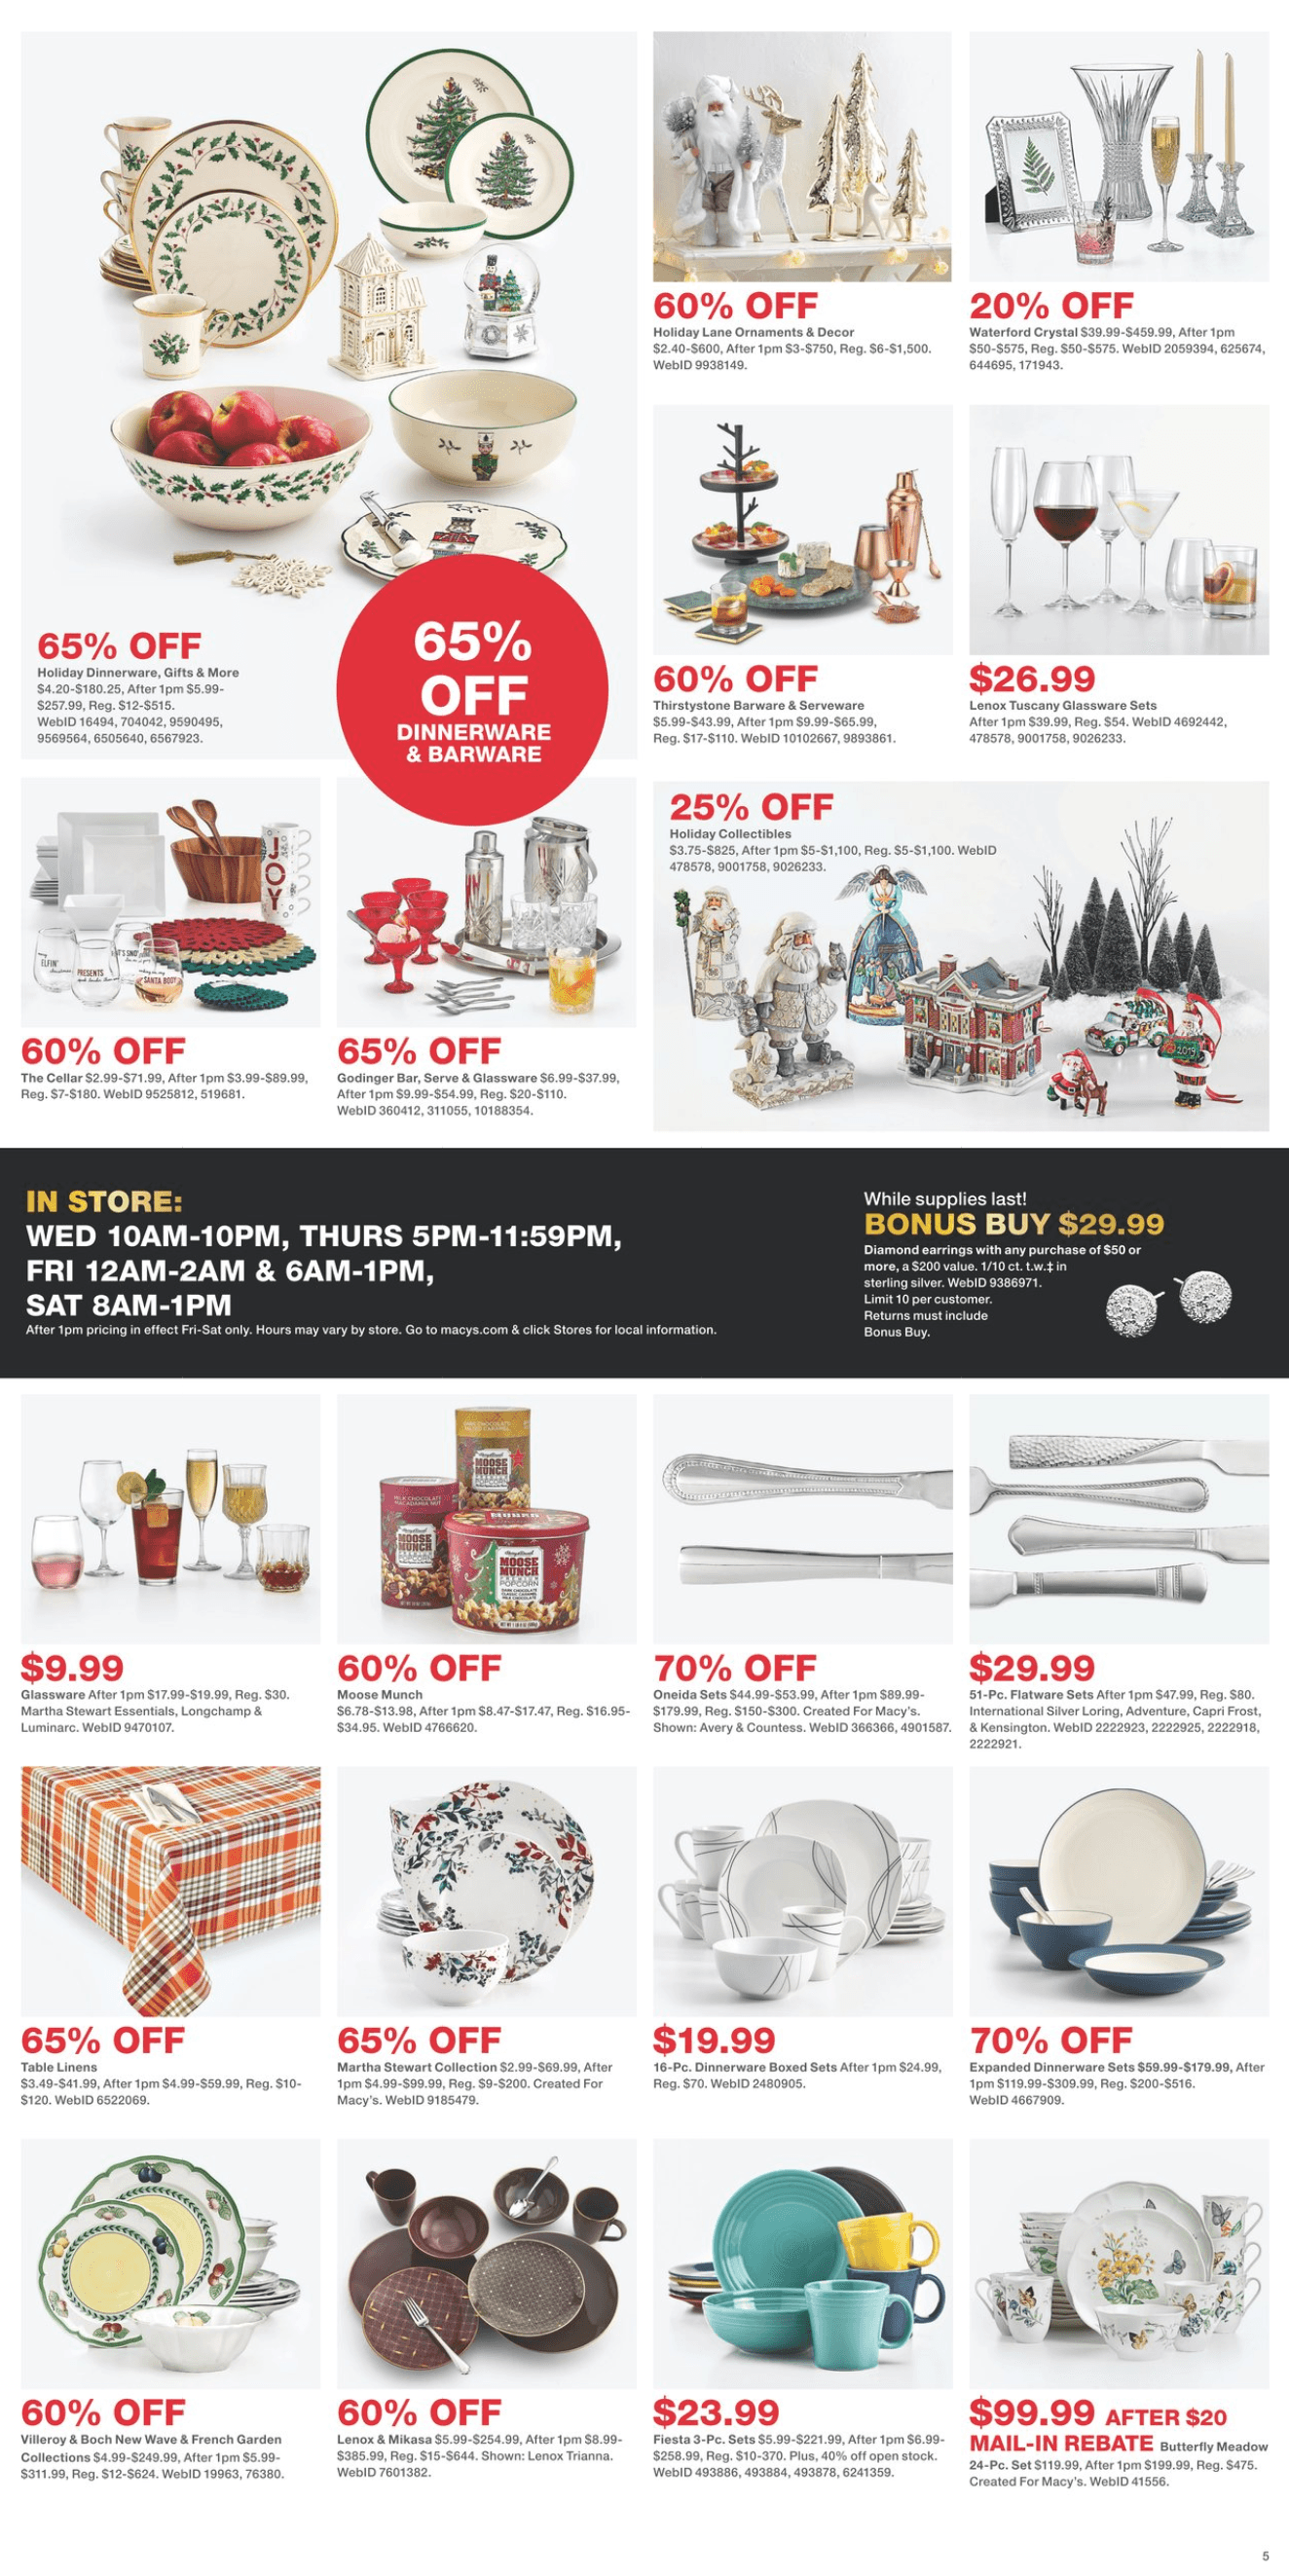 Macy's Black Friday 2019 Page 5